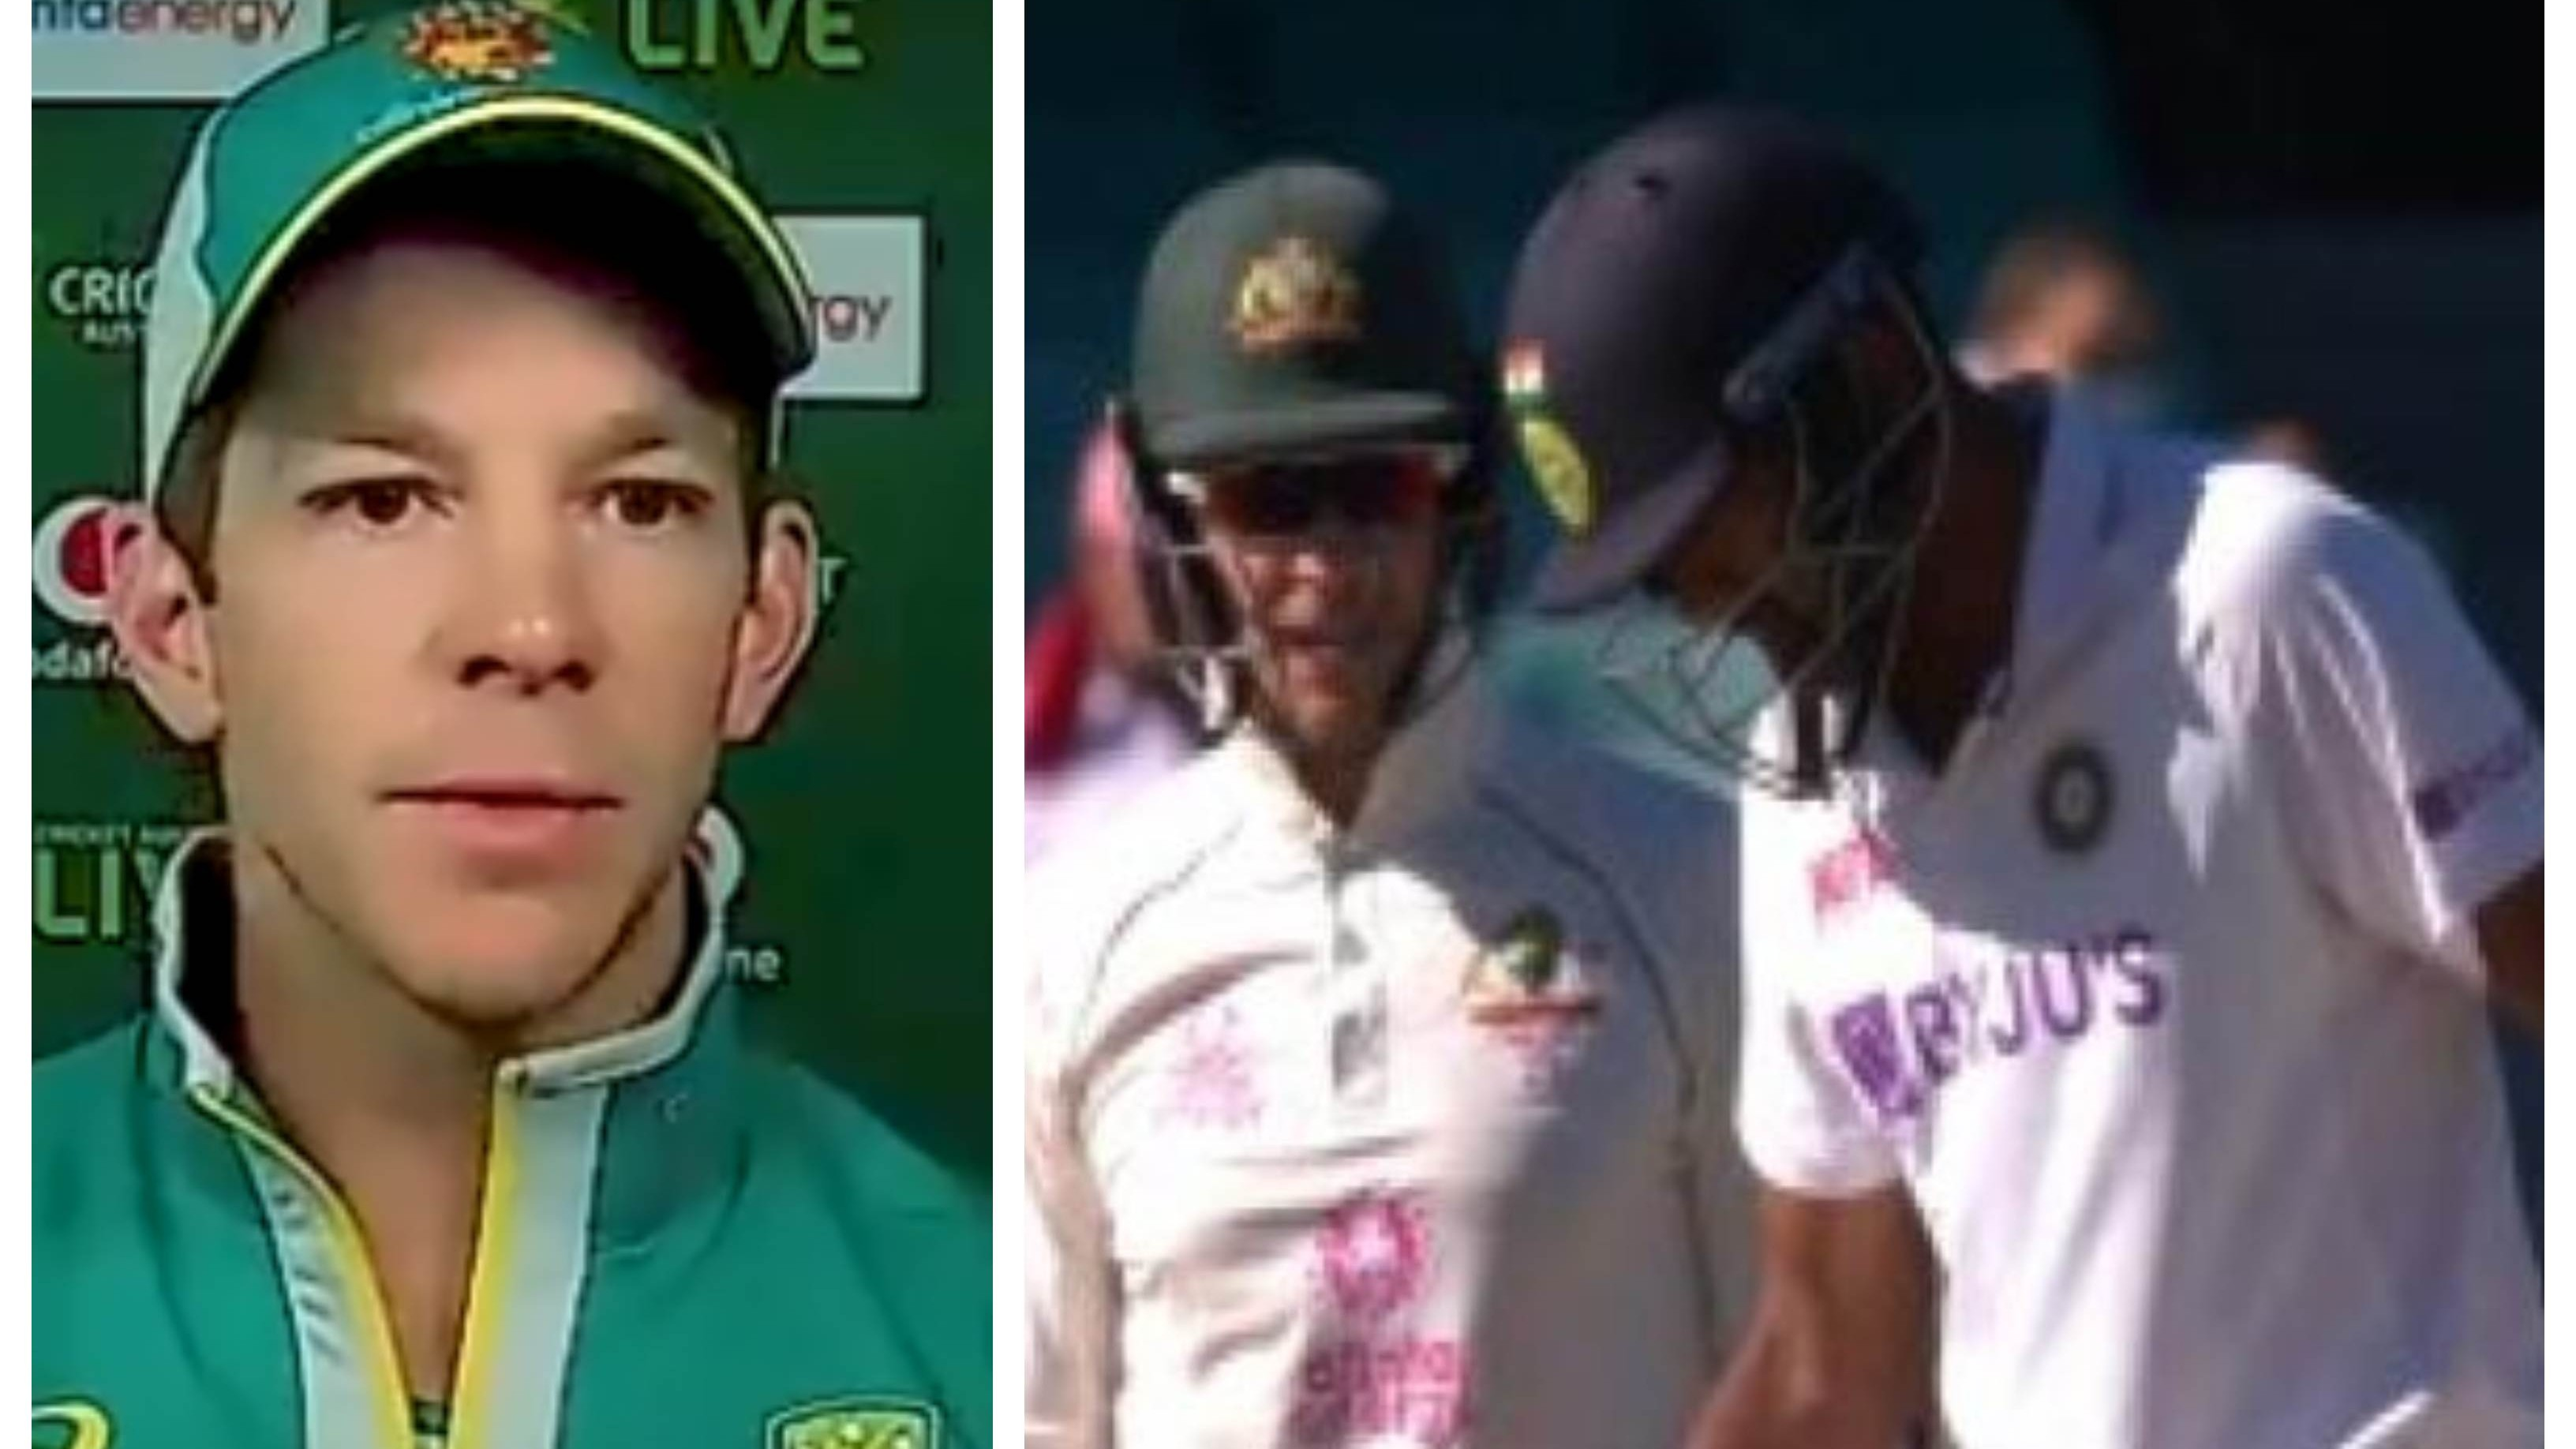 AUS v IND 2020-21: 'I ended up looking a fool', Tim Paine regrets his on-field behaviour on Day 5 at SCG